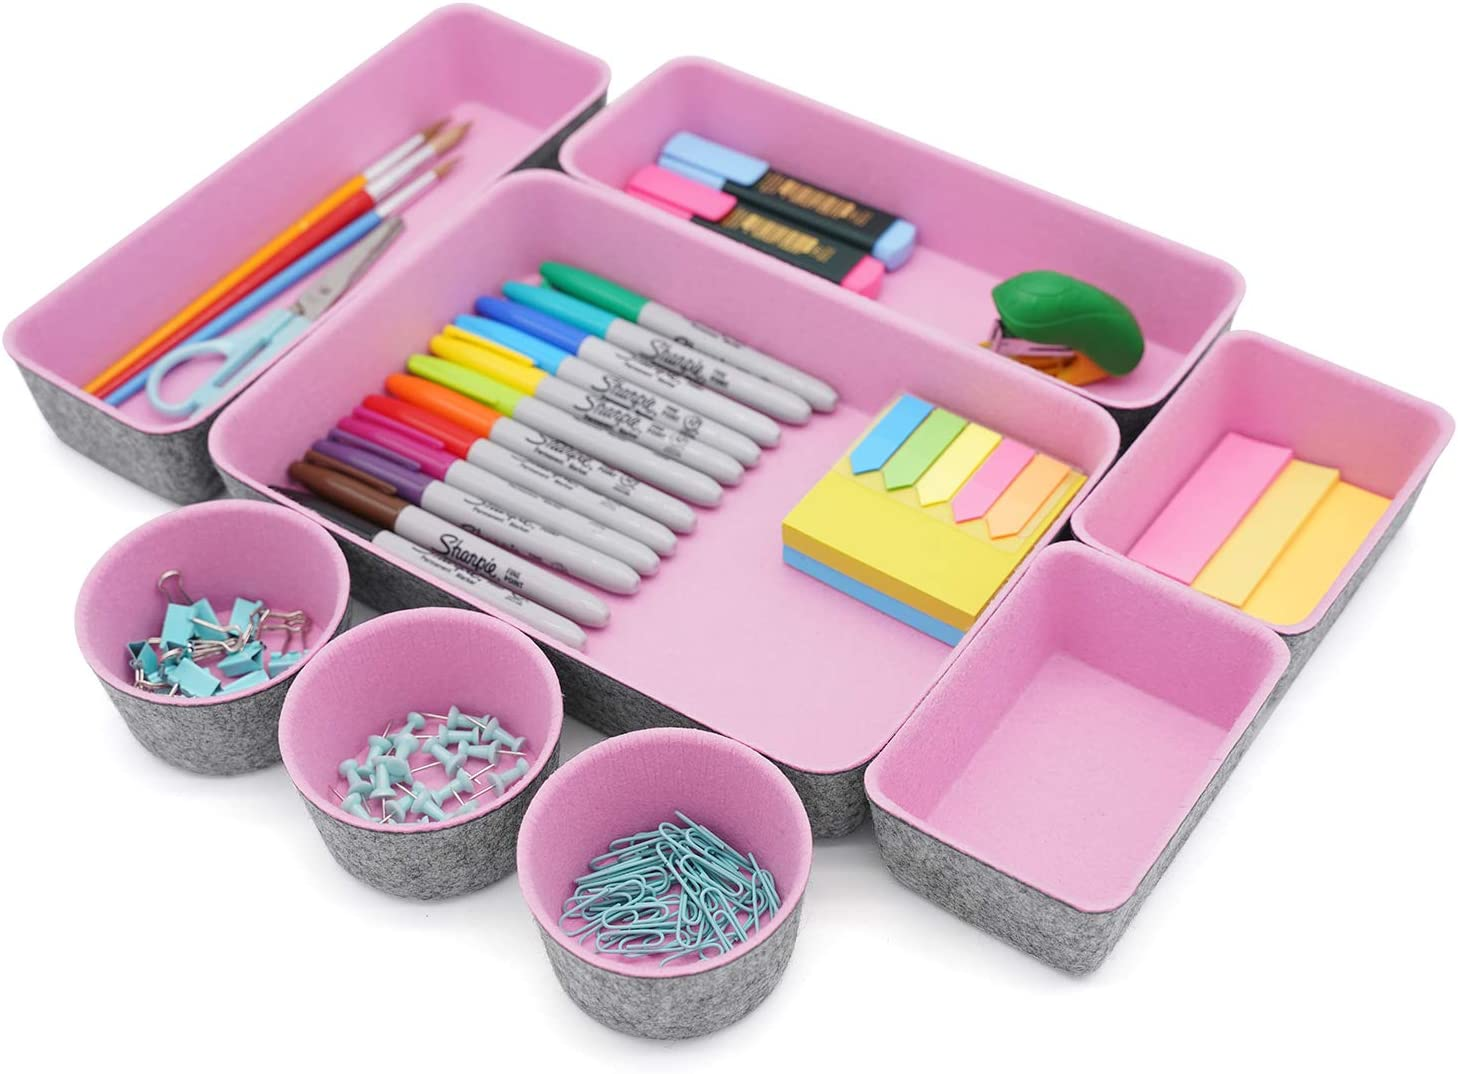 Welaxy Office Supplies Drawer Organizers Trays Storage Bins Drawers dividers Storage bin Vanity Gifts idea,Pack -8 (Pink)